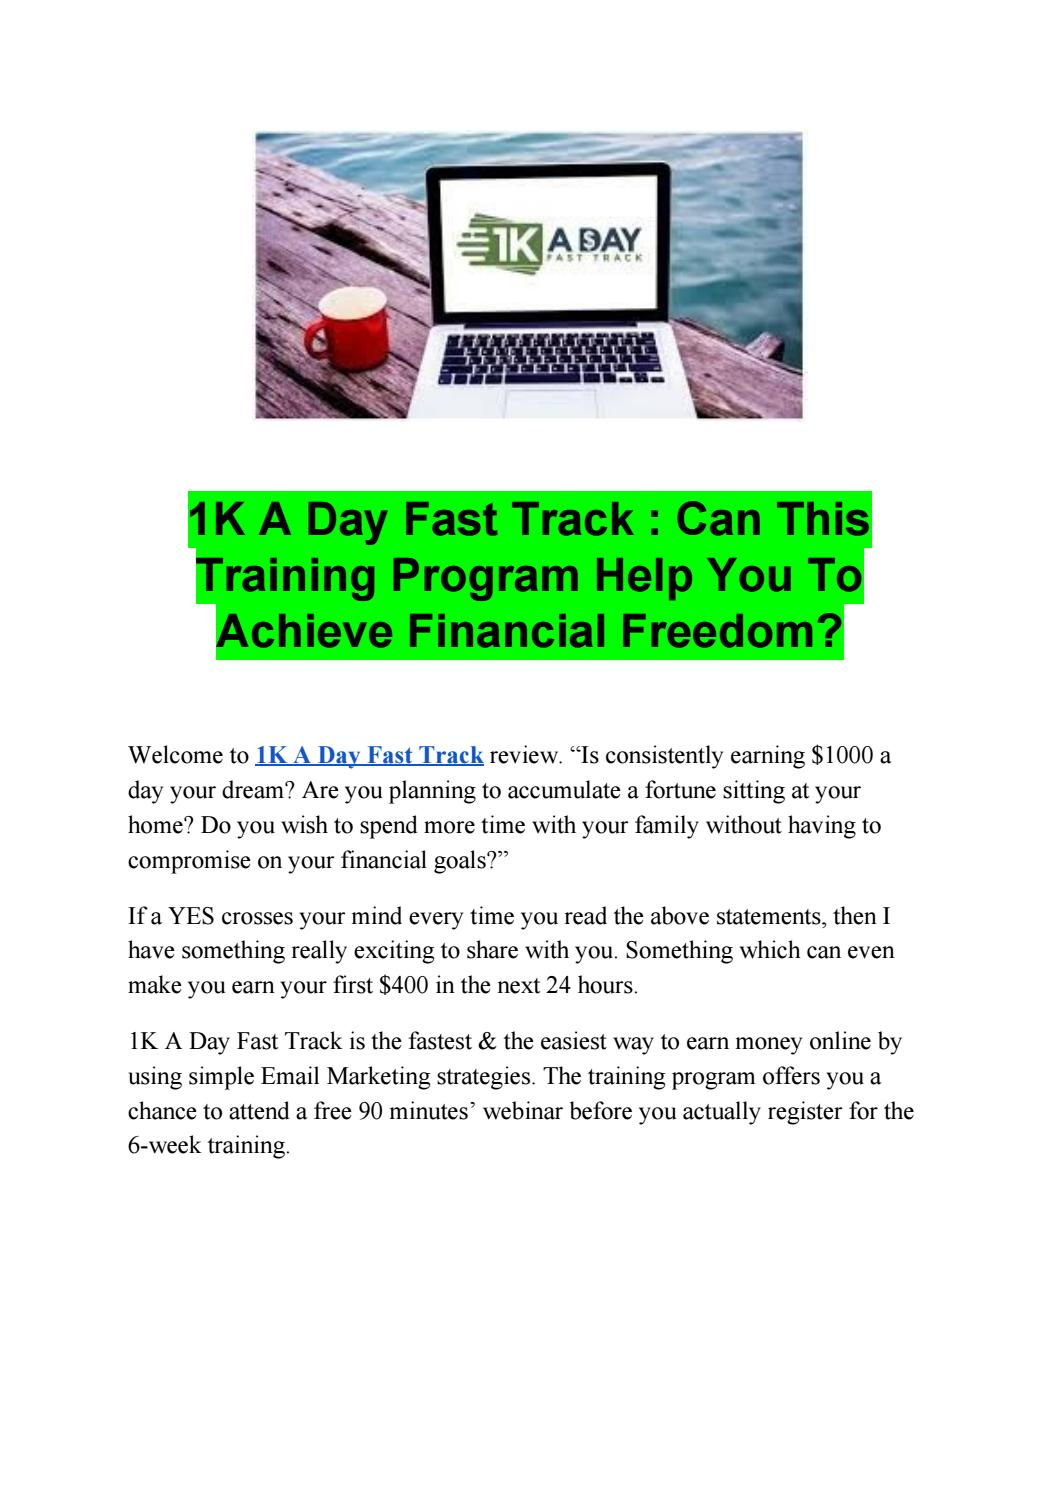 Full Price 1k A Day Fast Track Training Program